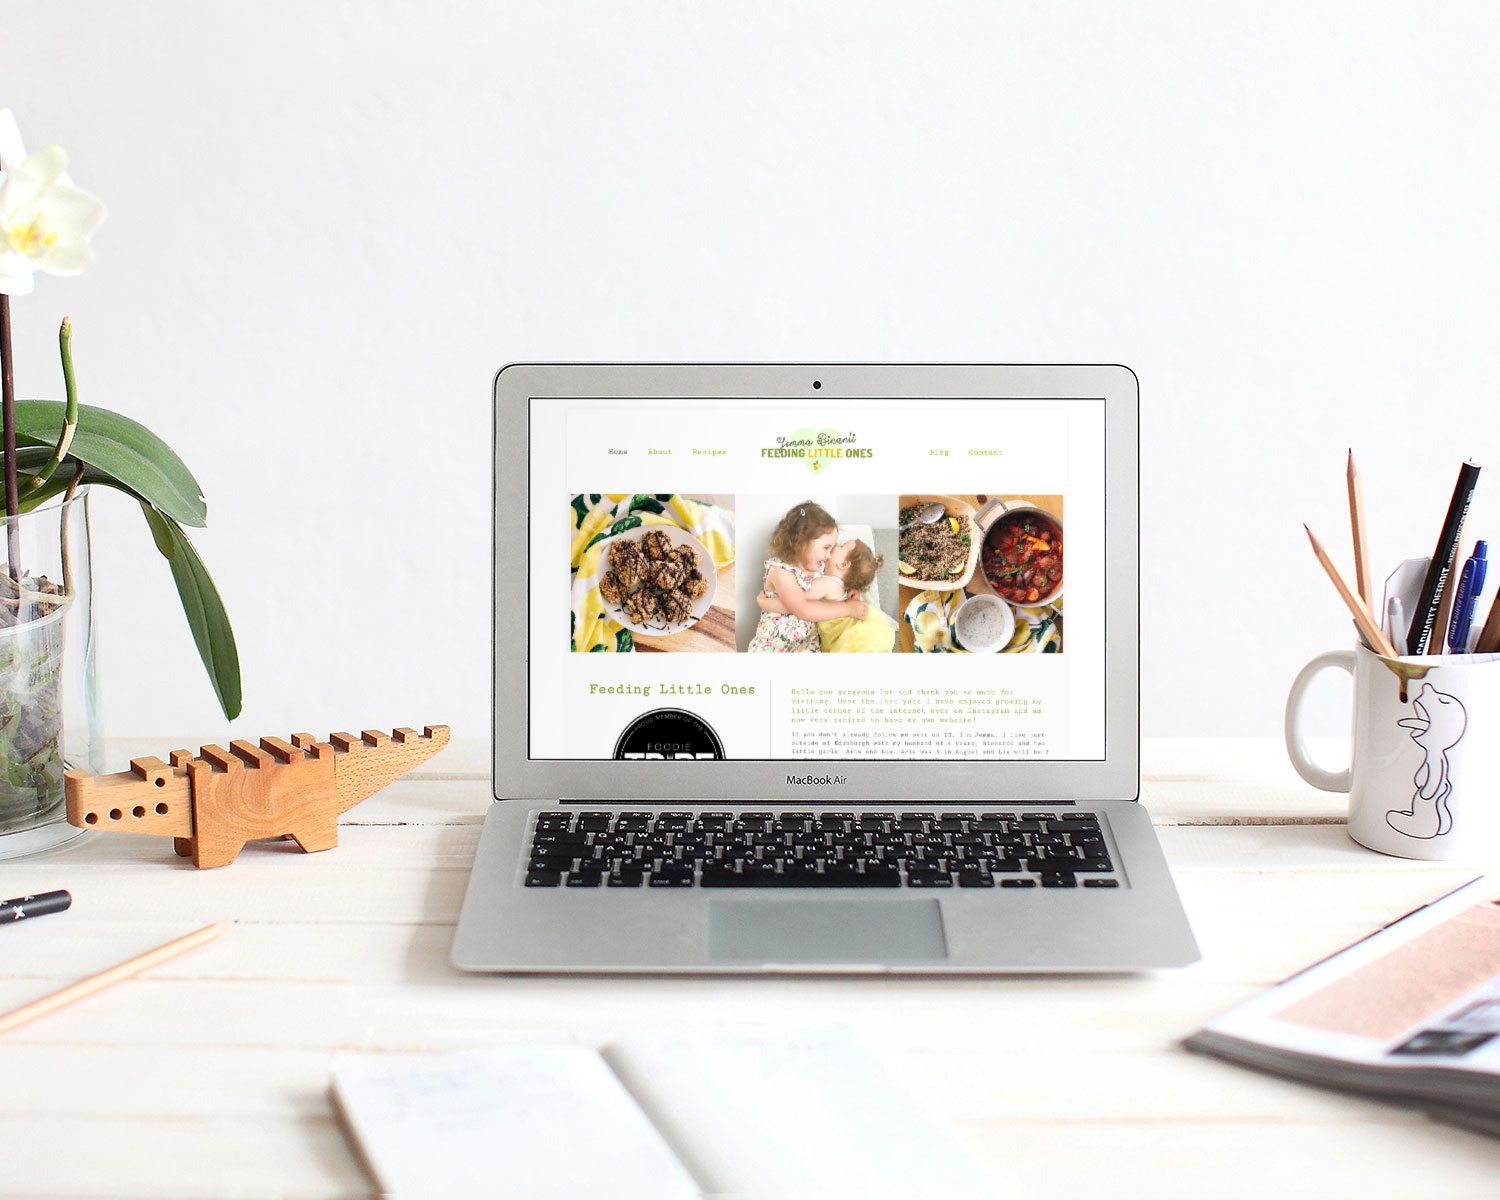 Recipe-Blog-Website-Design-for-Feeding-Little-Ones-by-Three-Girls-Media_Macbook